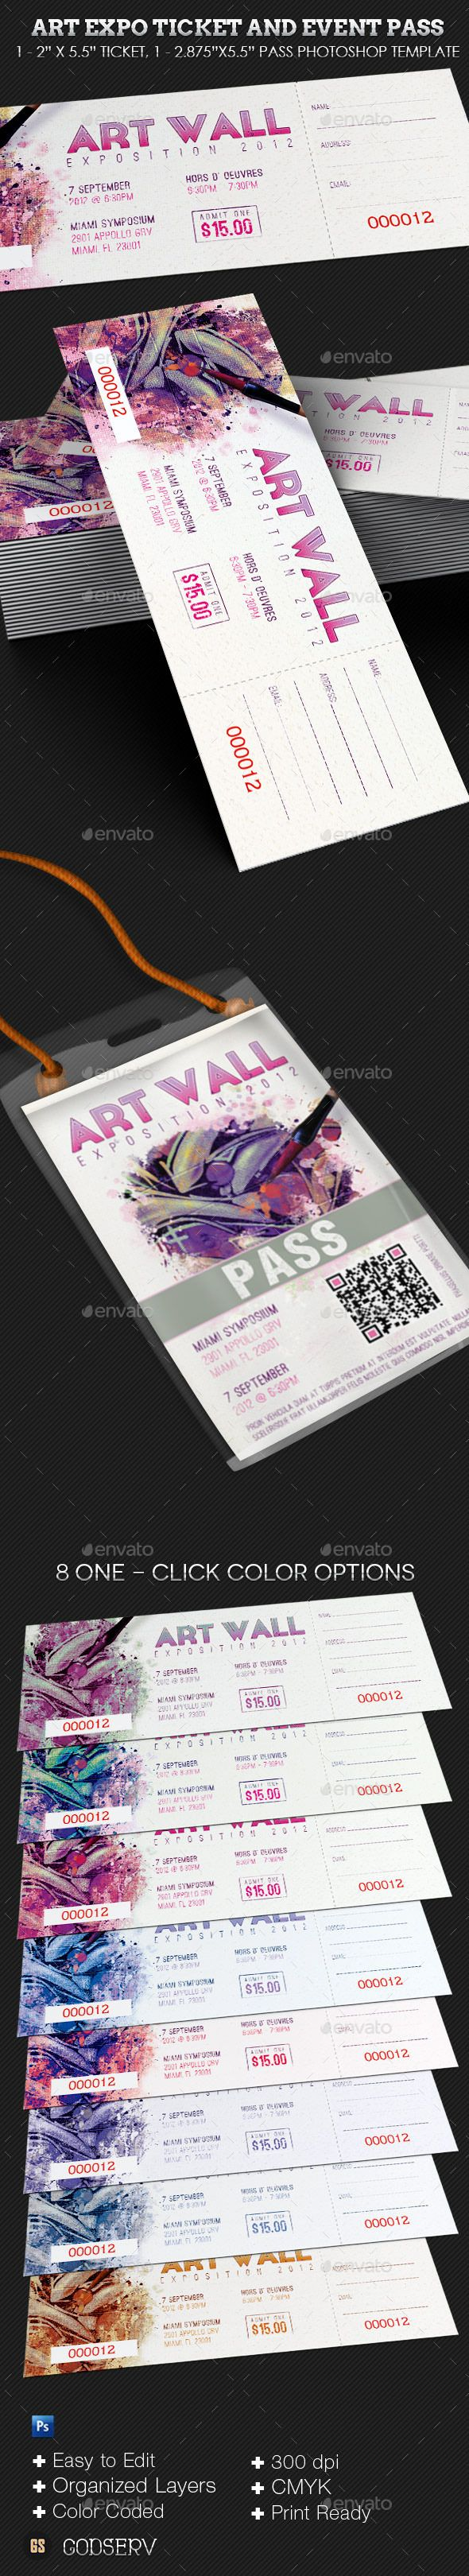 34 best Design: Ticket images on Pinterest | Print templates, Event ...